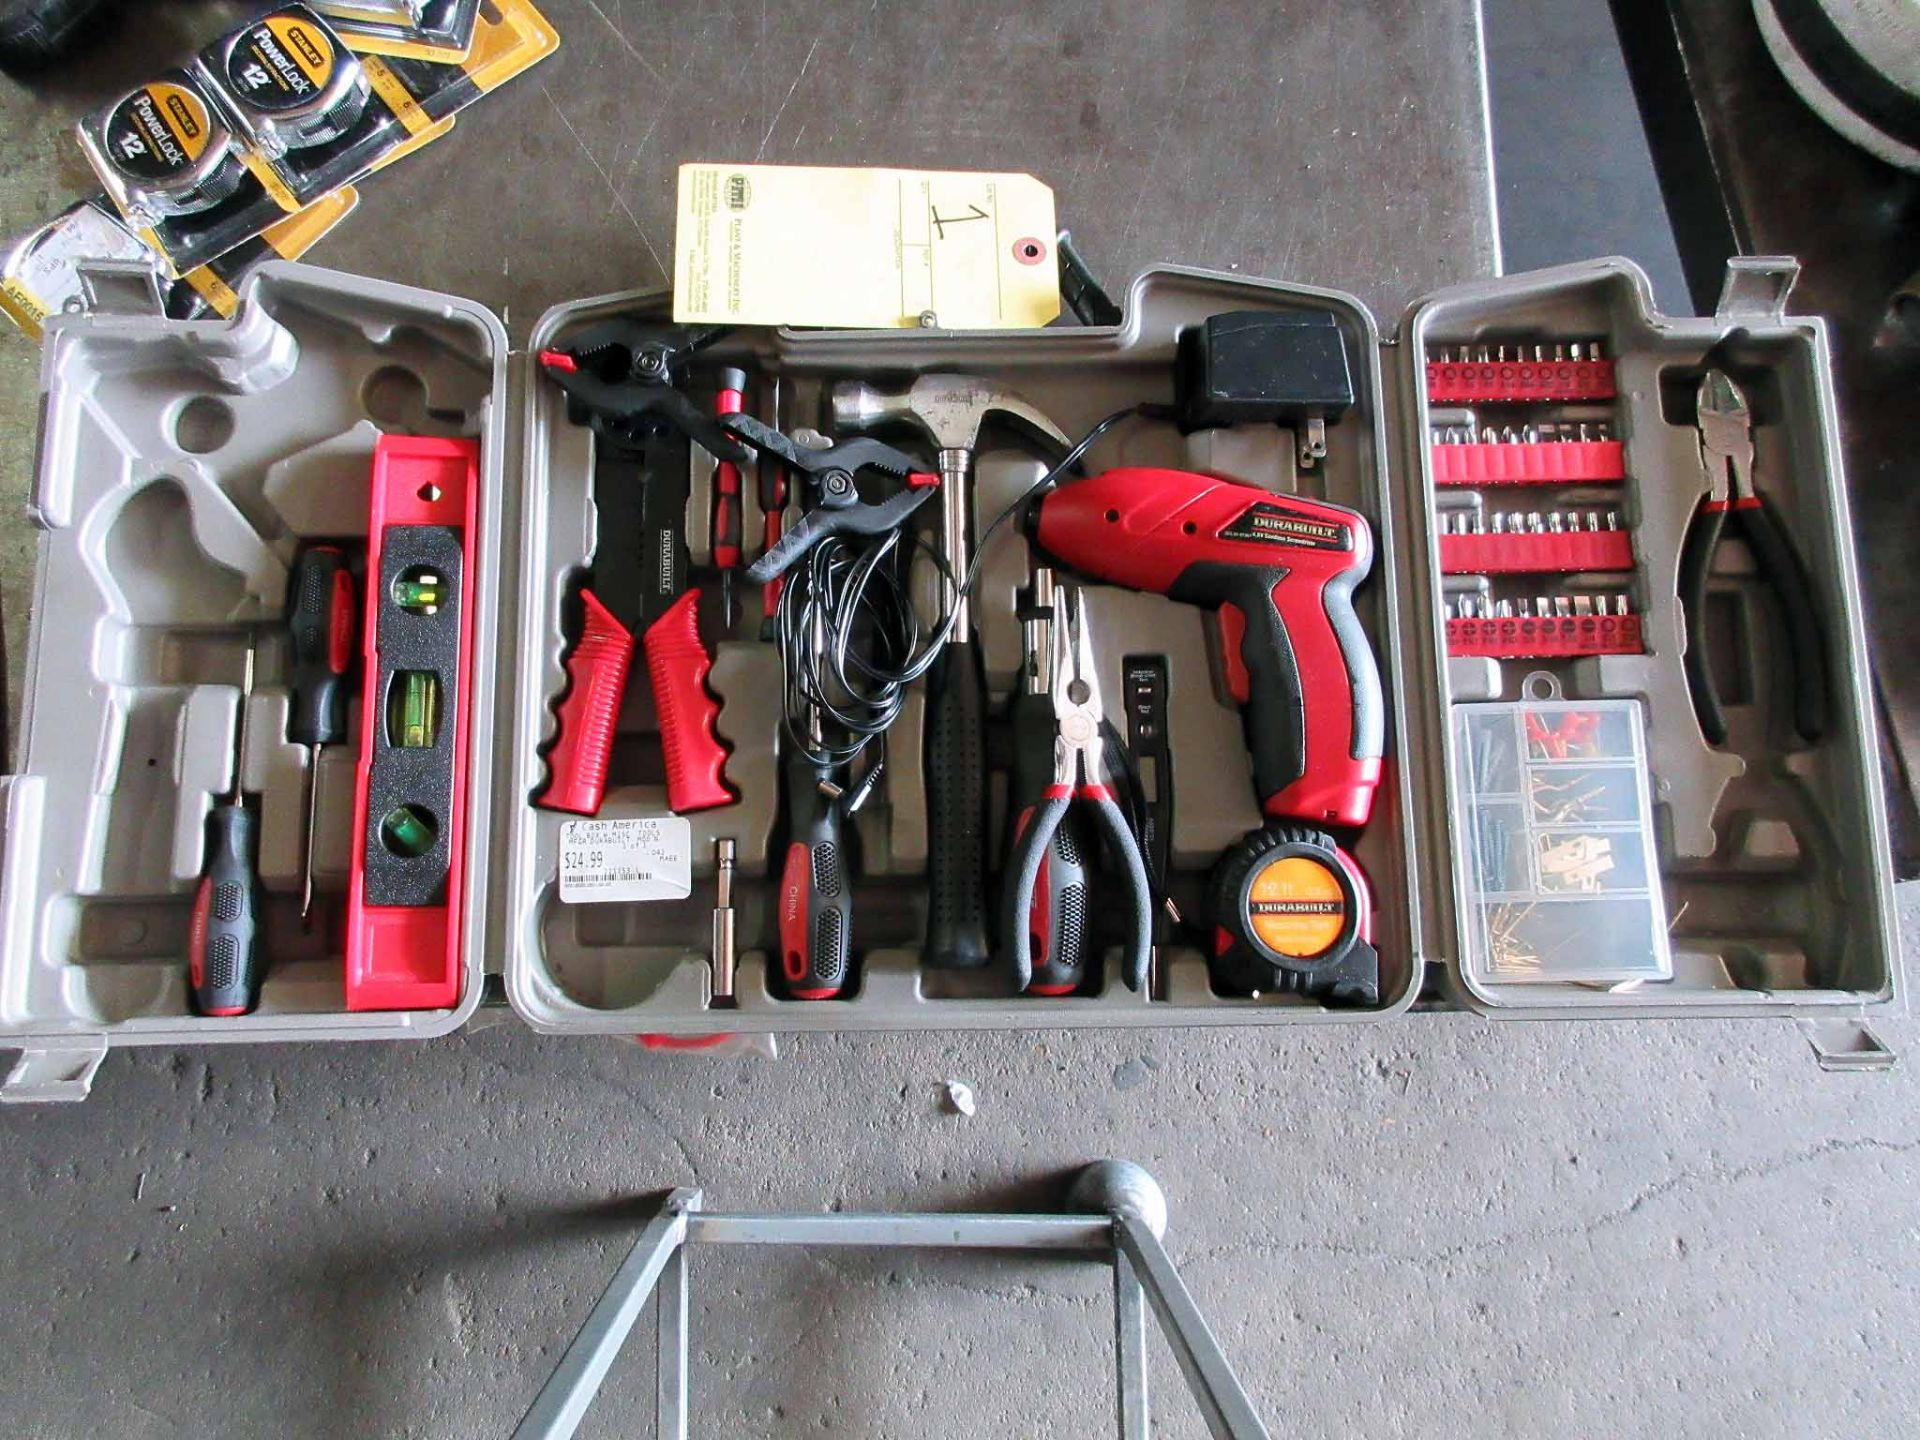 Lot 1 - LOT CONSISTING OF: (161 pc.) tool set & (32 pc.) screwdriver set (new in box)